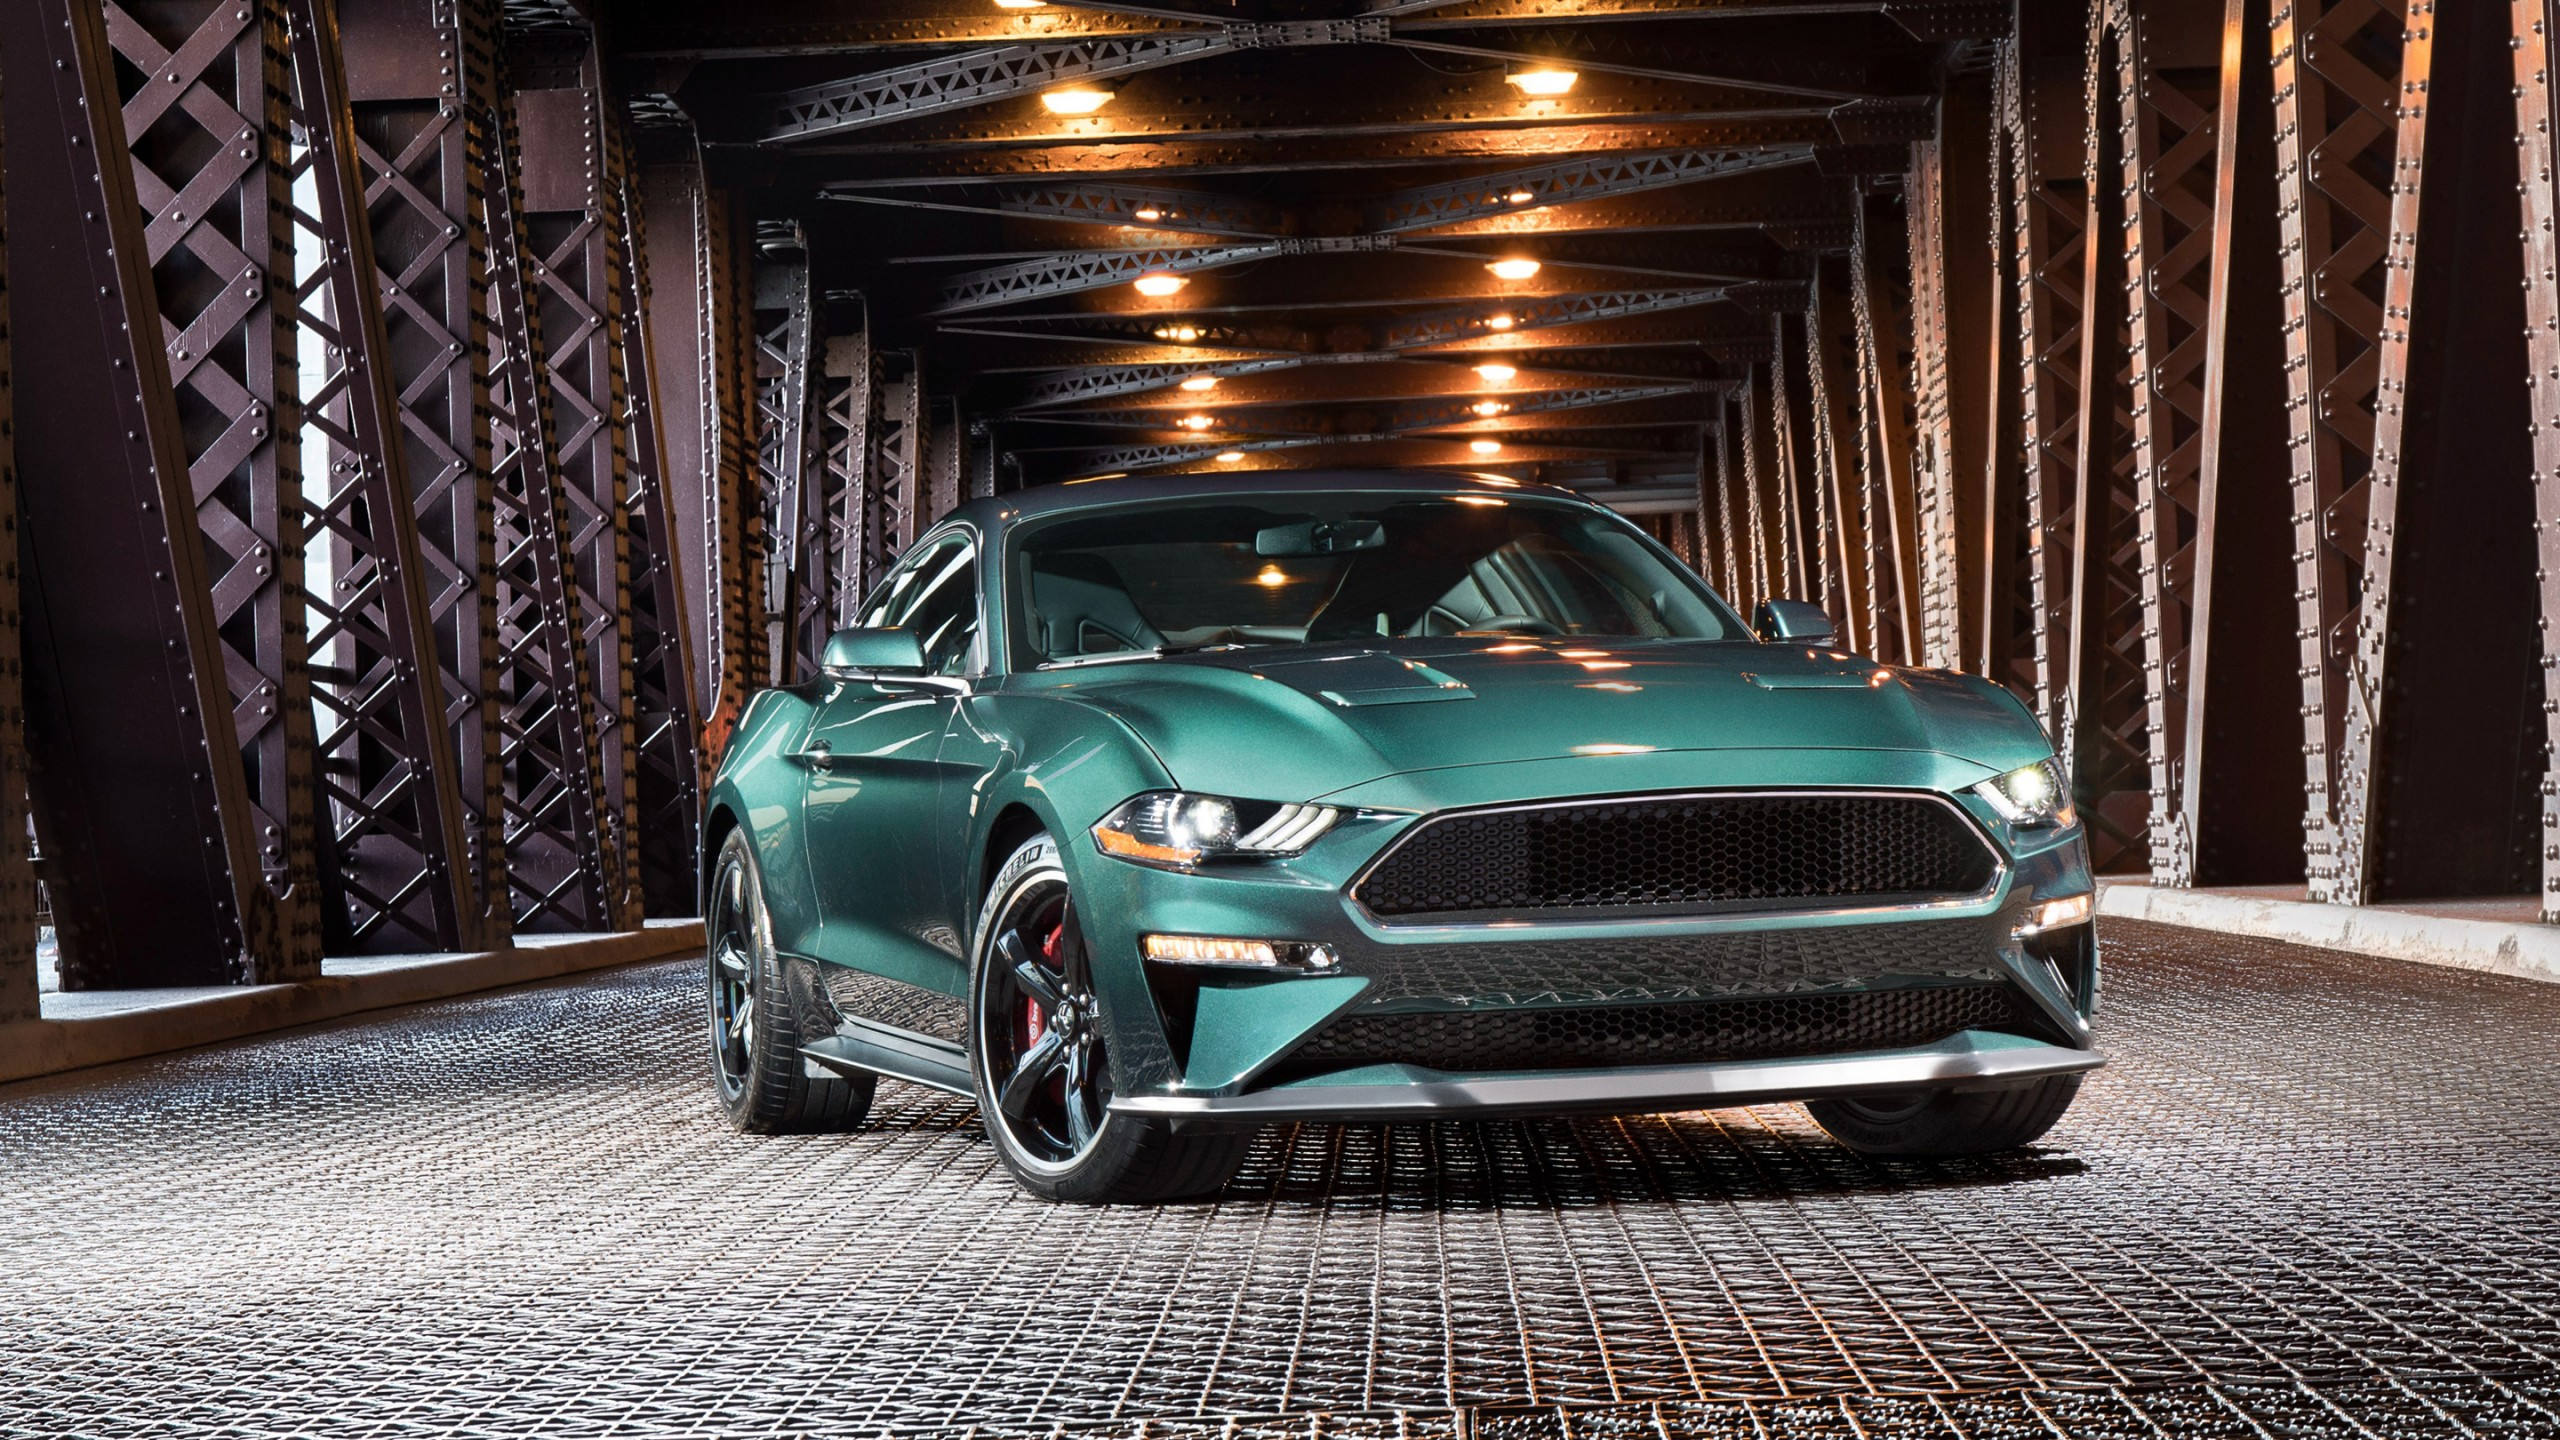 Widescreen Car Wallpapers Hd 2019 Ford Mustang Bullitt Wallpaper Hd Car Wallpapers